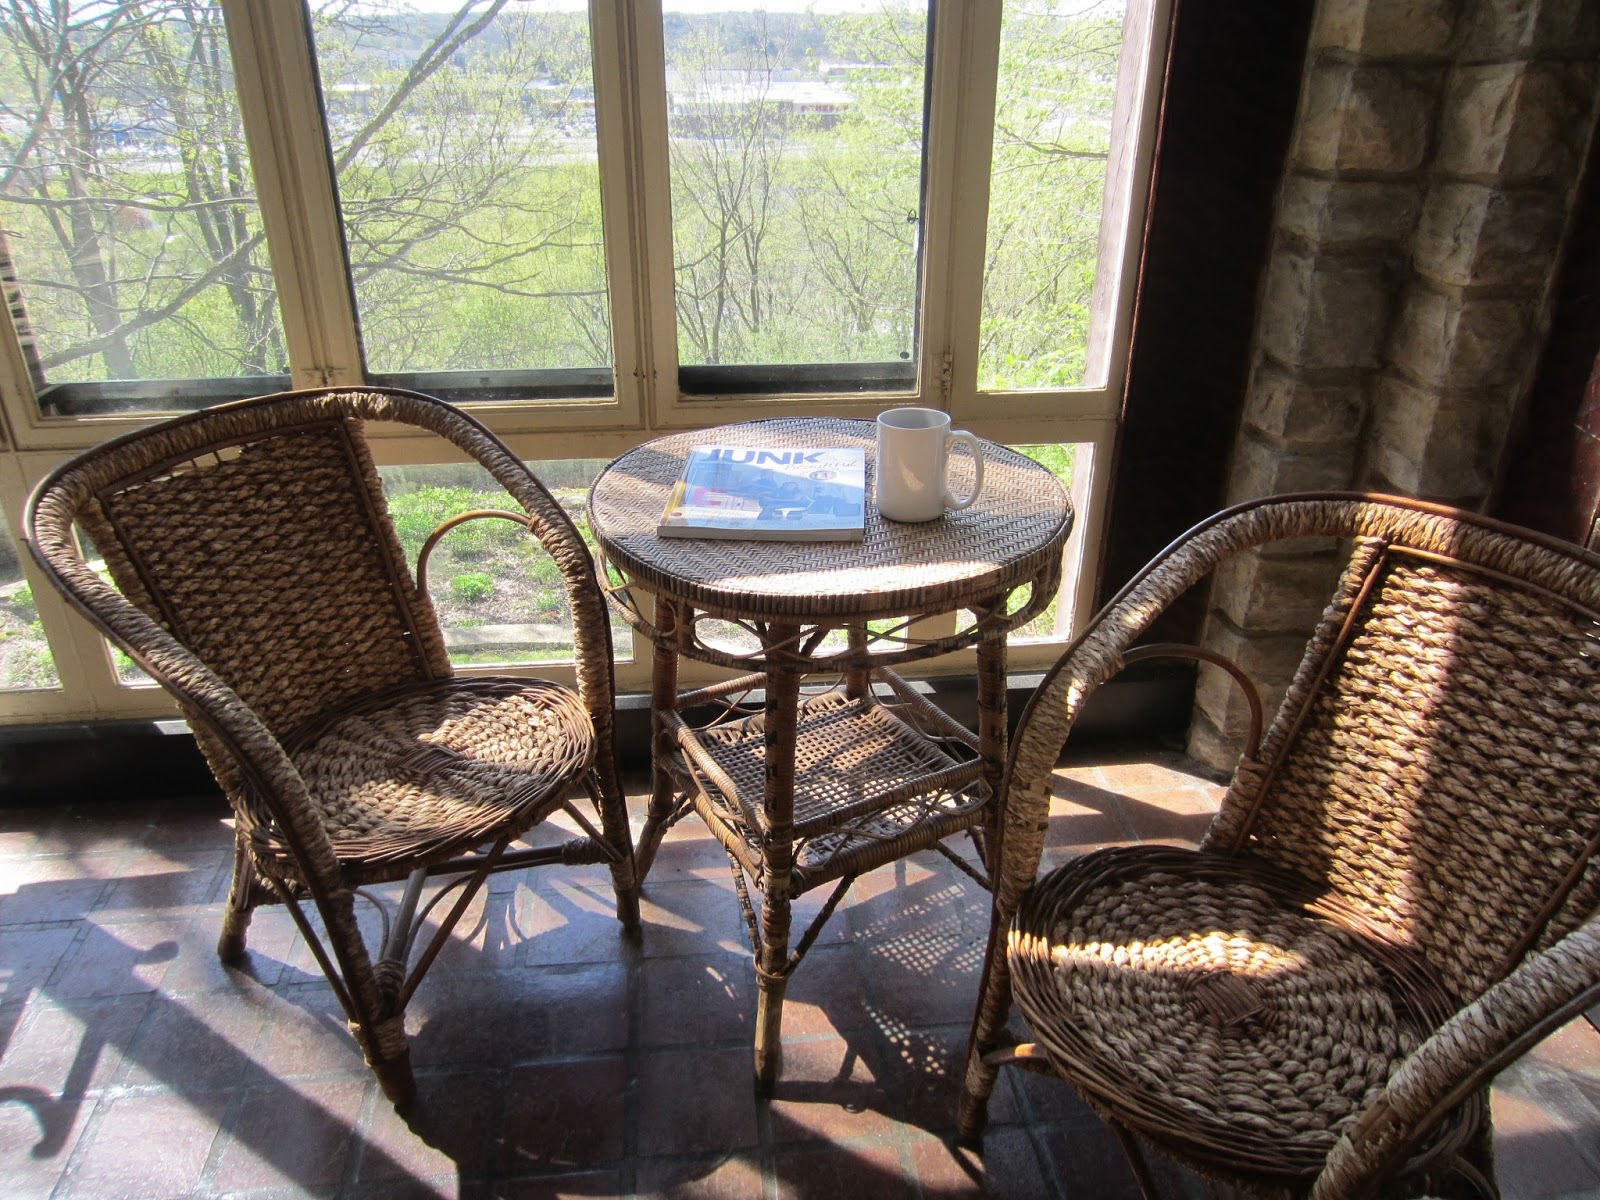 Yes, I Am Reading A Book On Repurposing JUNK By Ki Nausser. The Four Season  Glassed In Porch Overlooks A Garden Which Used To Be A Swimming Pool.